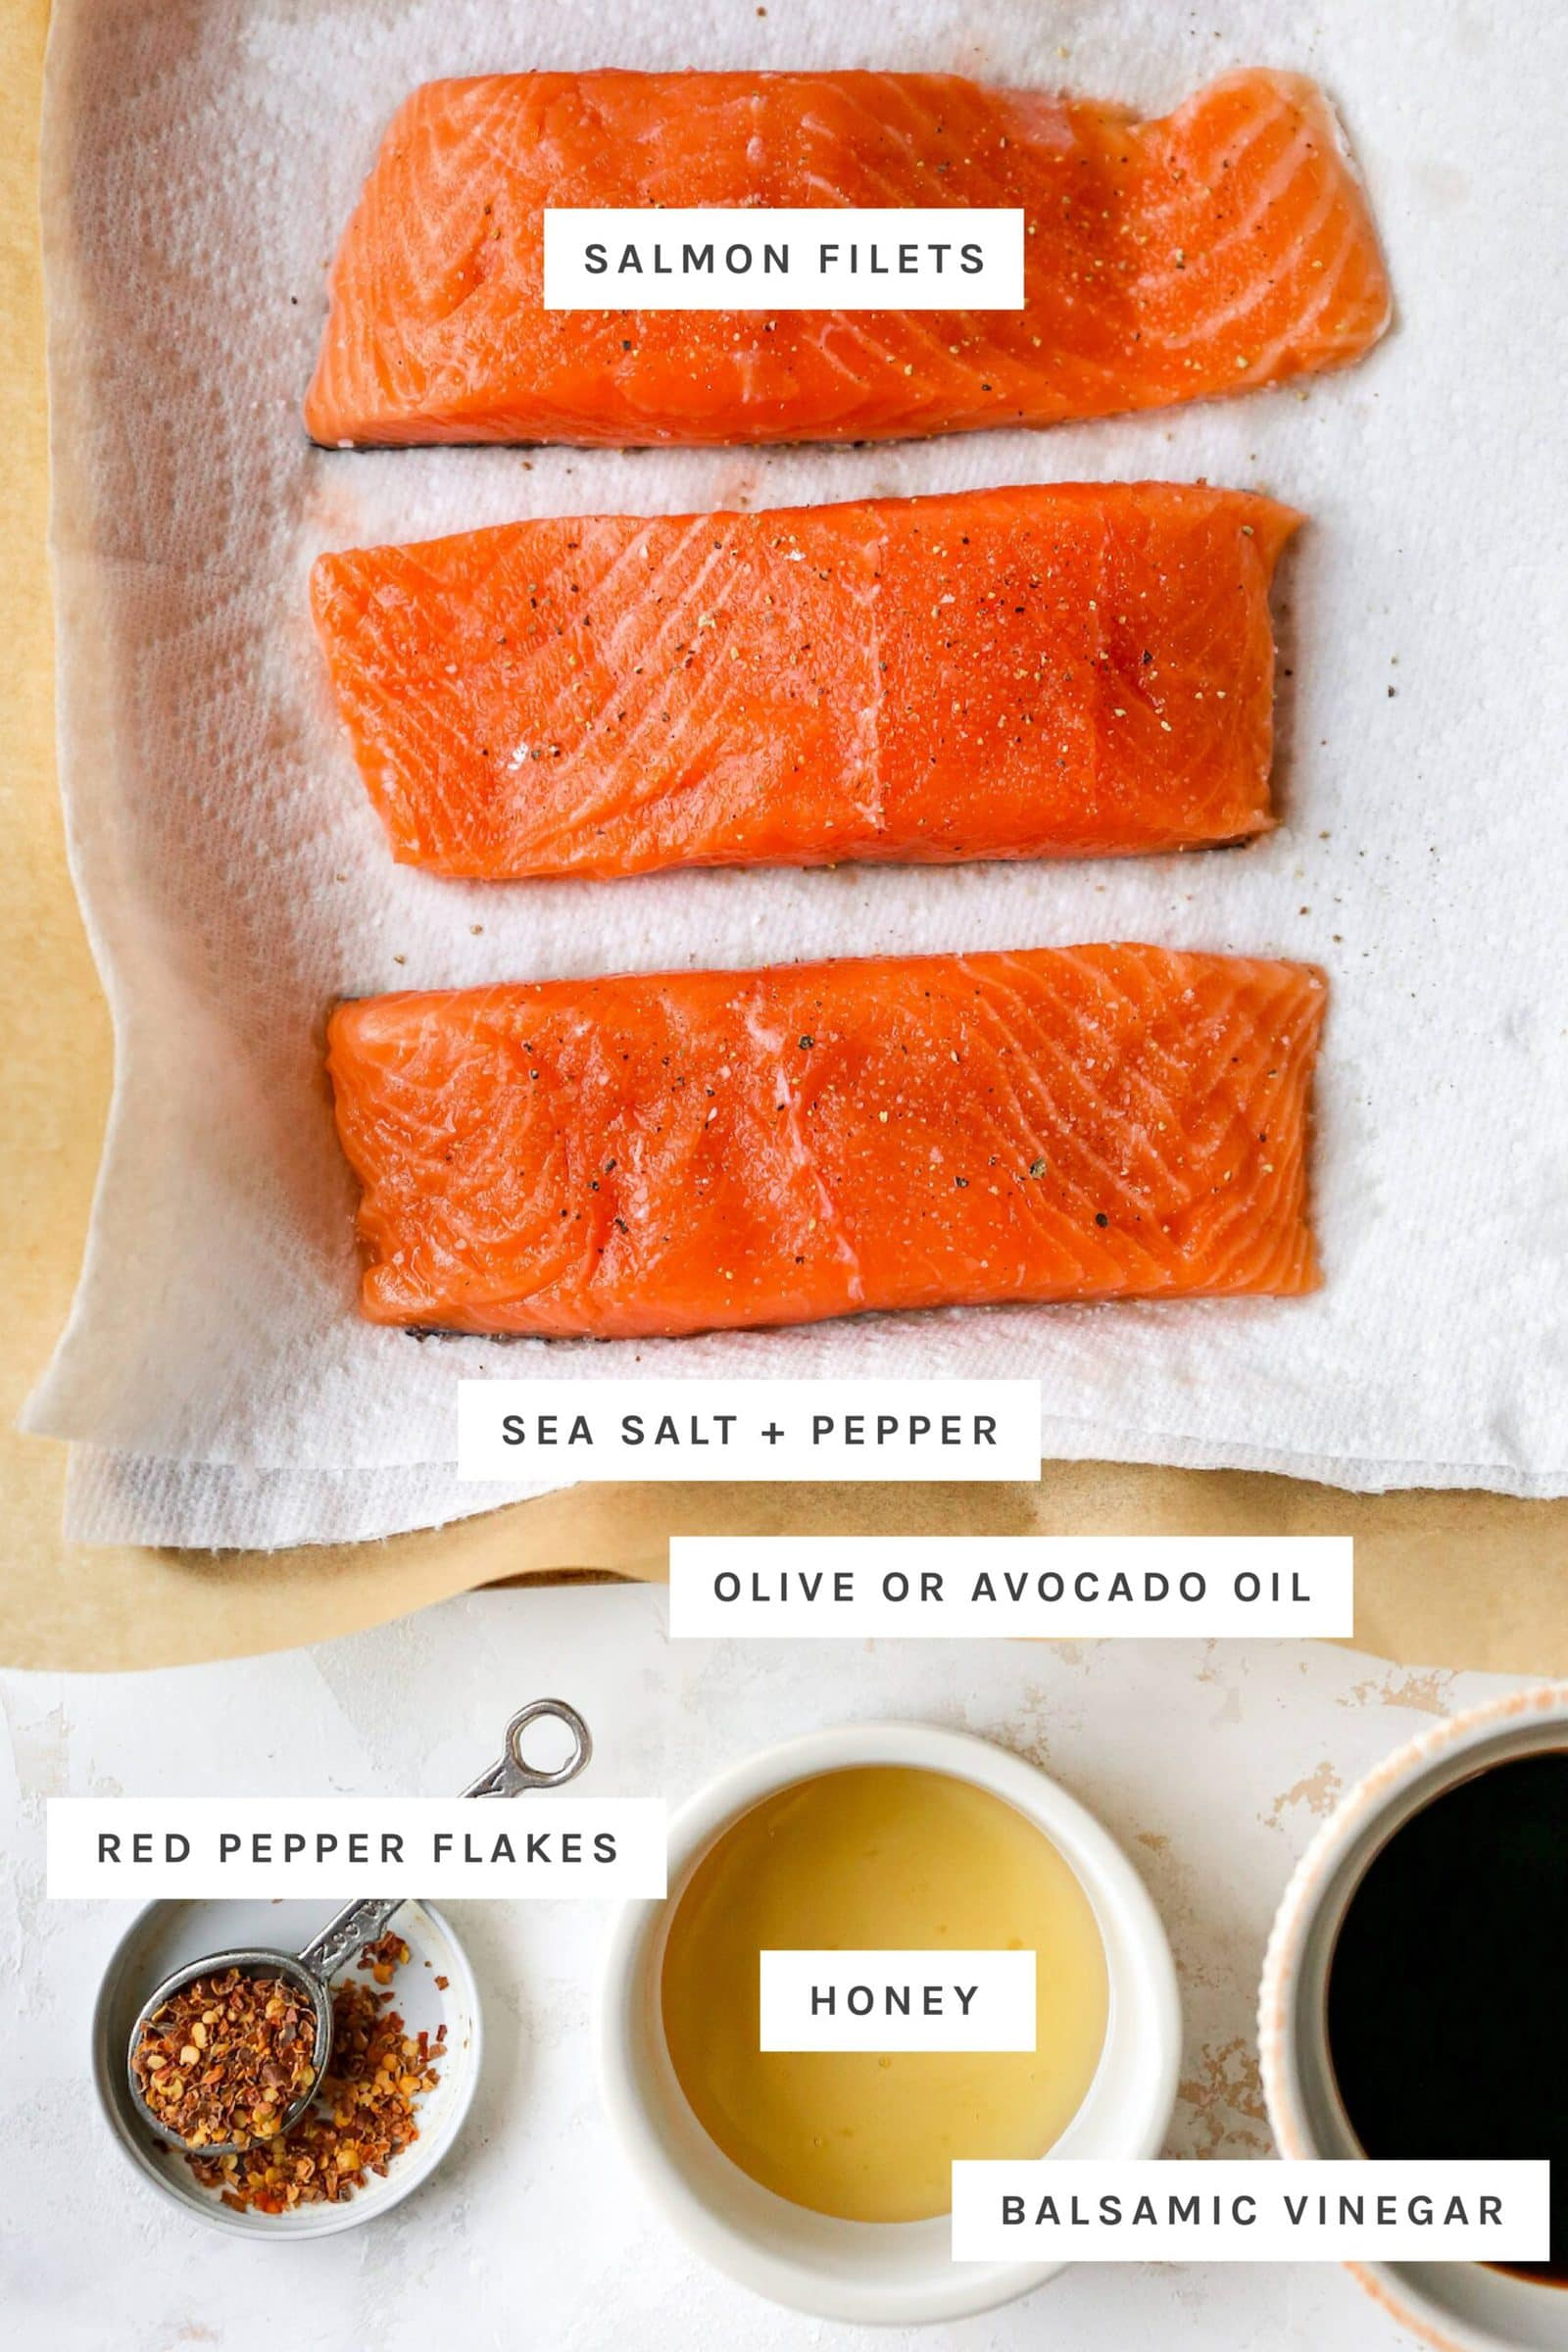 Three filets of raw salmon sprinkled with salt and pepper and bowls of red pepper, honey and balsamic vinegar.